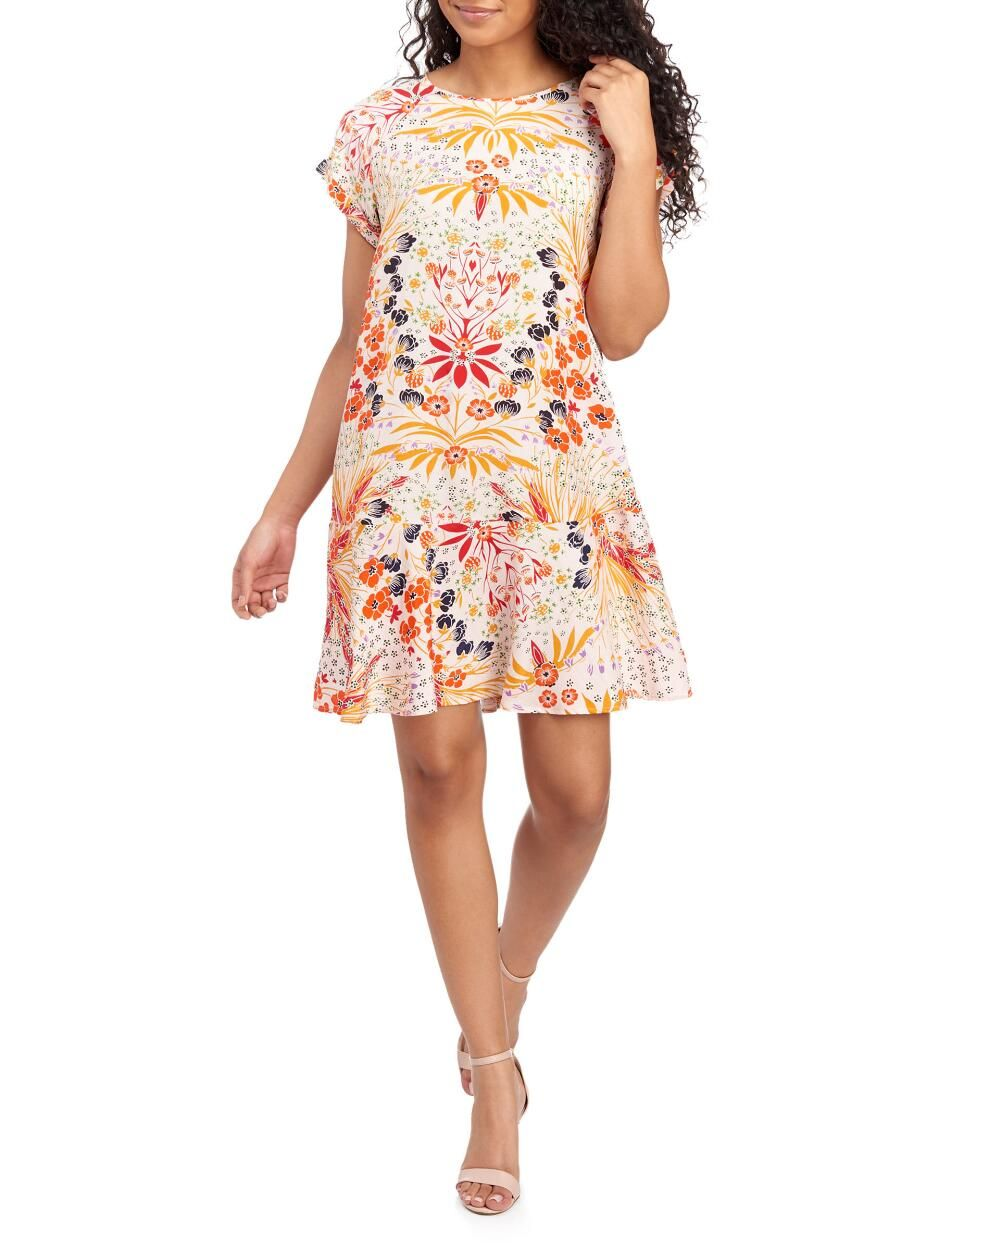 Chelsea Theodore Mirrored Floral Swing Dress Stein Mart Dresses Swing Shirt Dress Swing Dress [ 1250 x 1000 Pixel ]